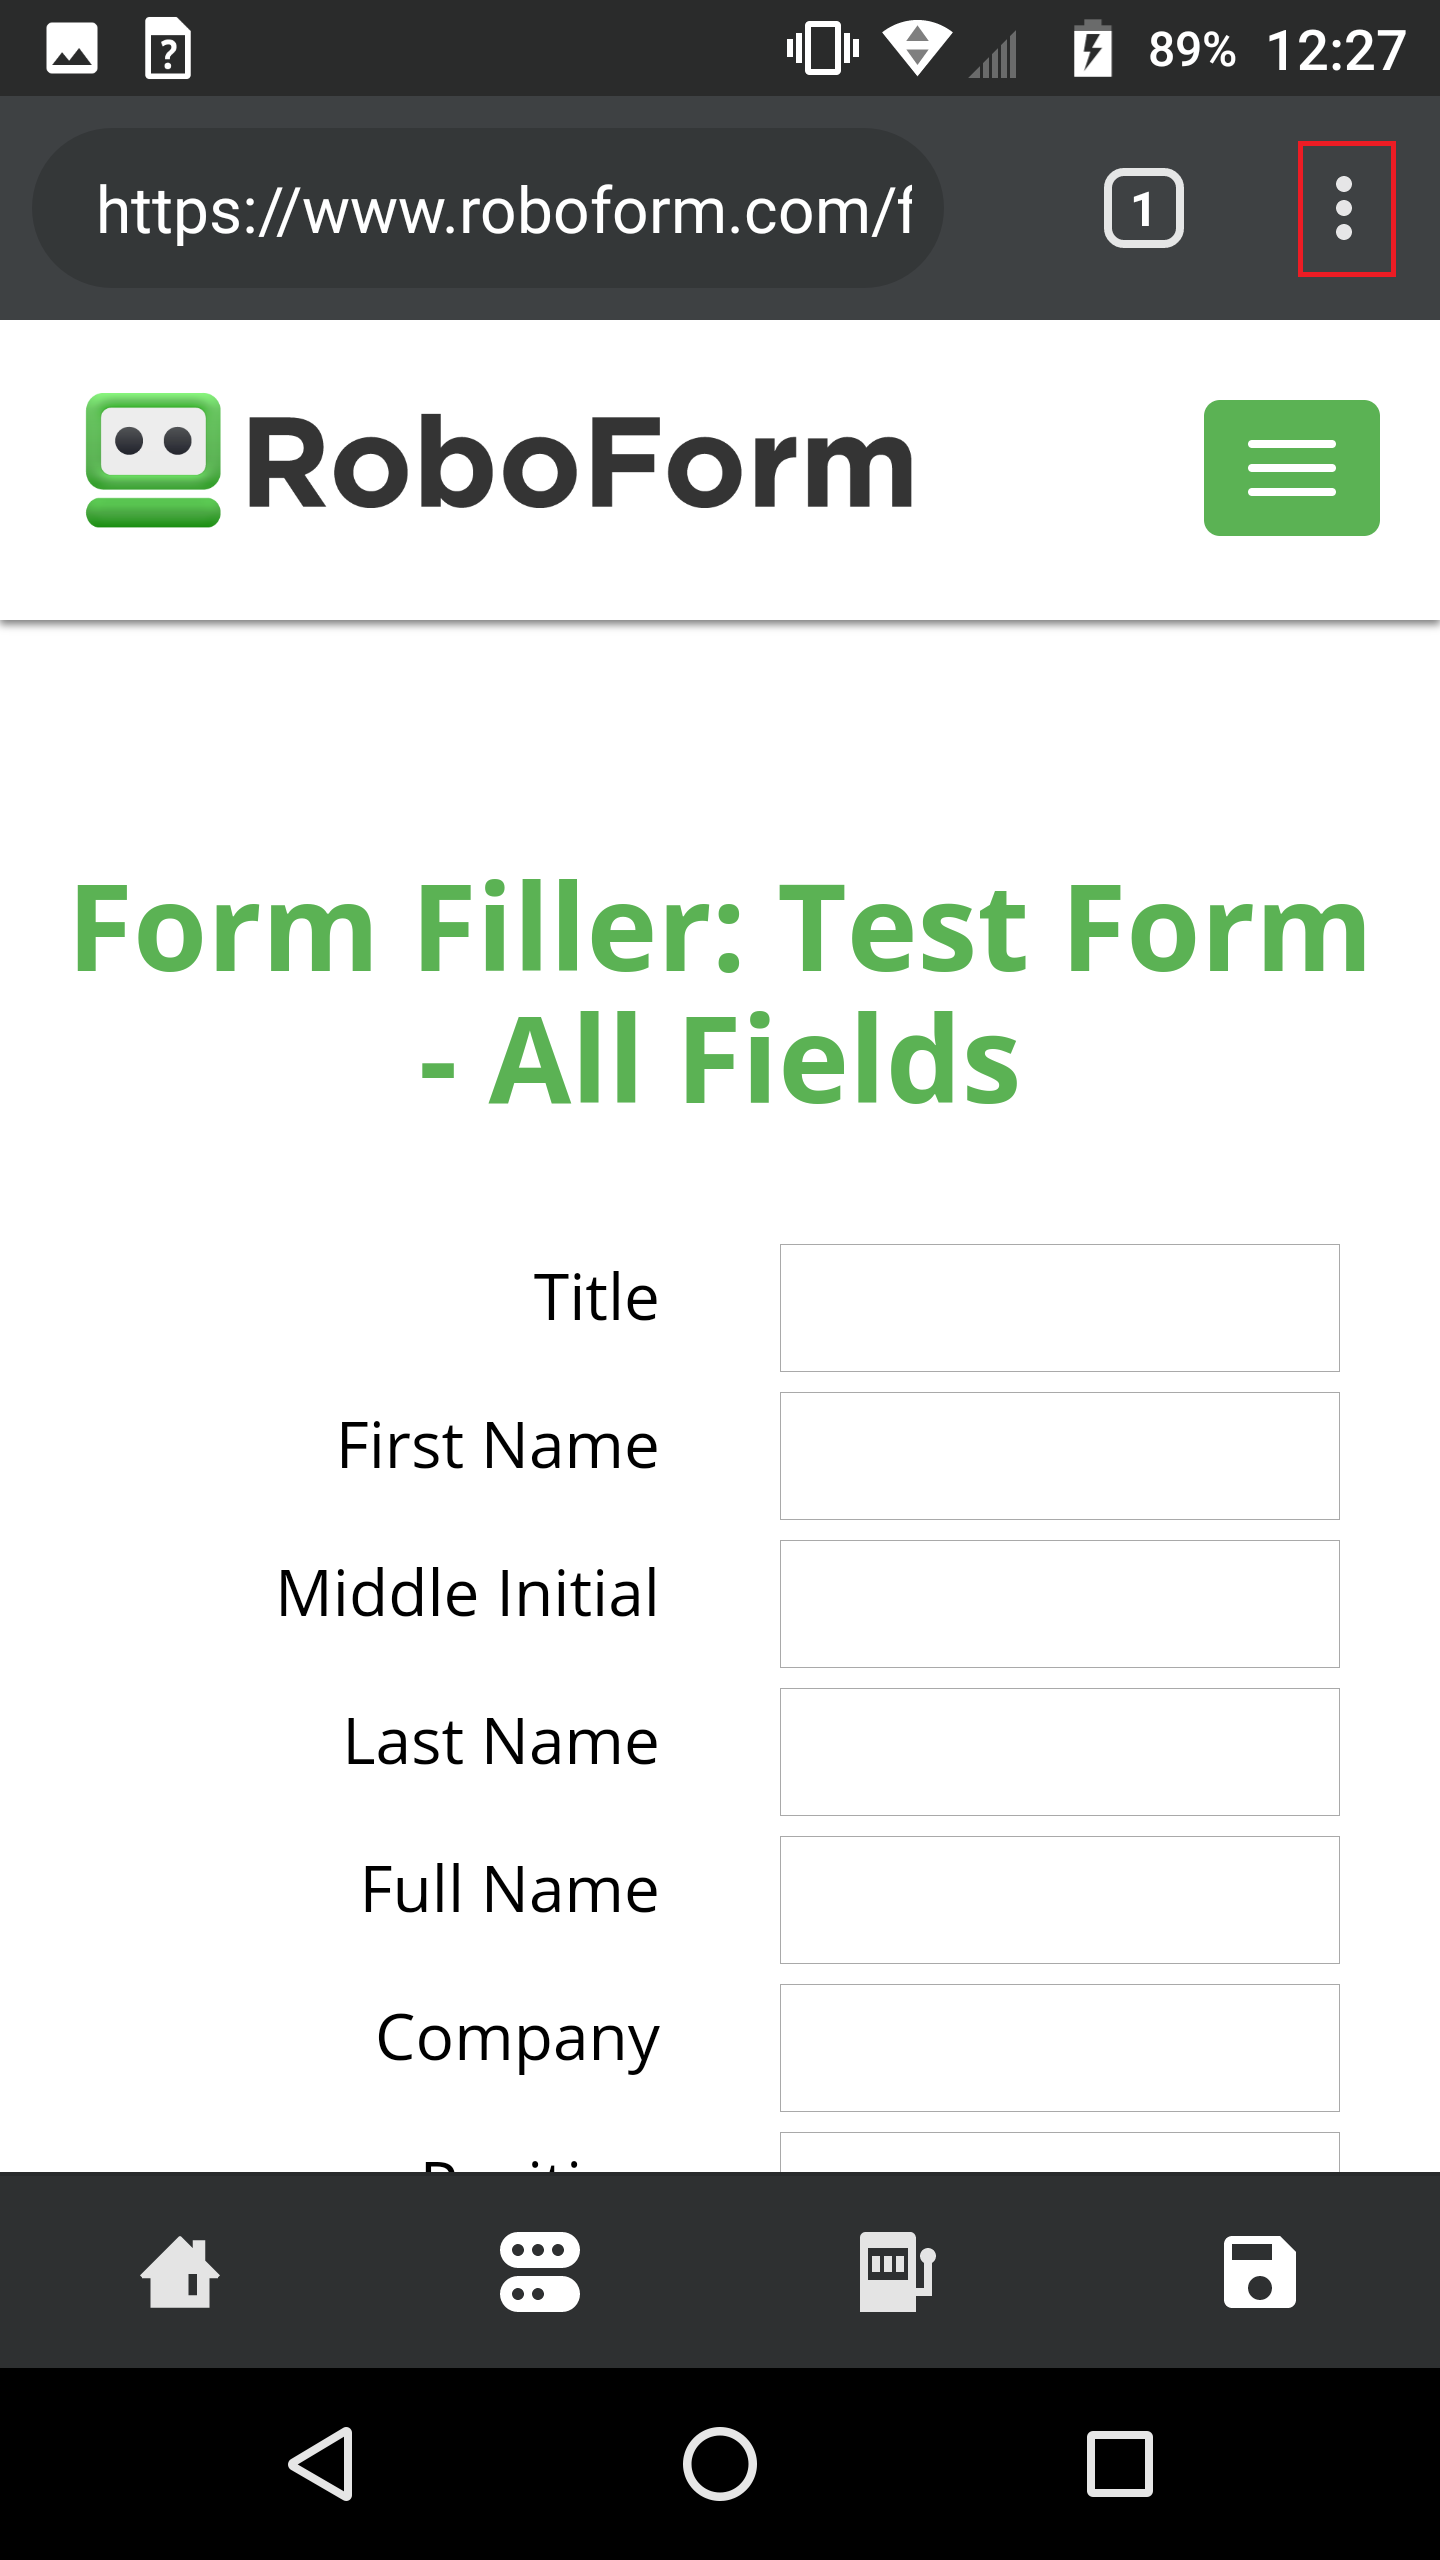 How can I fill forms from my Identities in the Android app